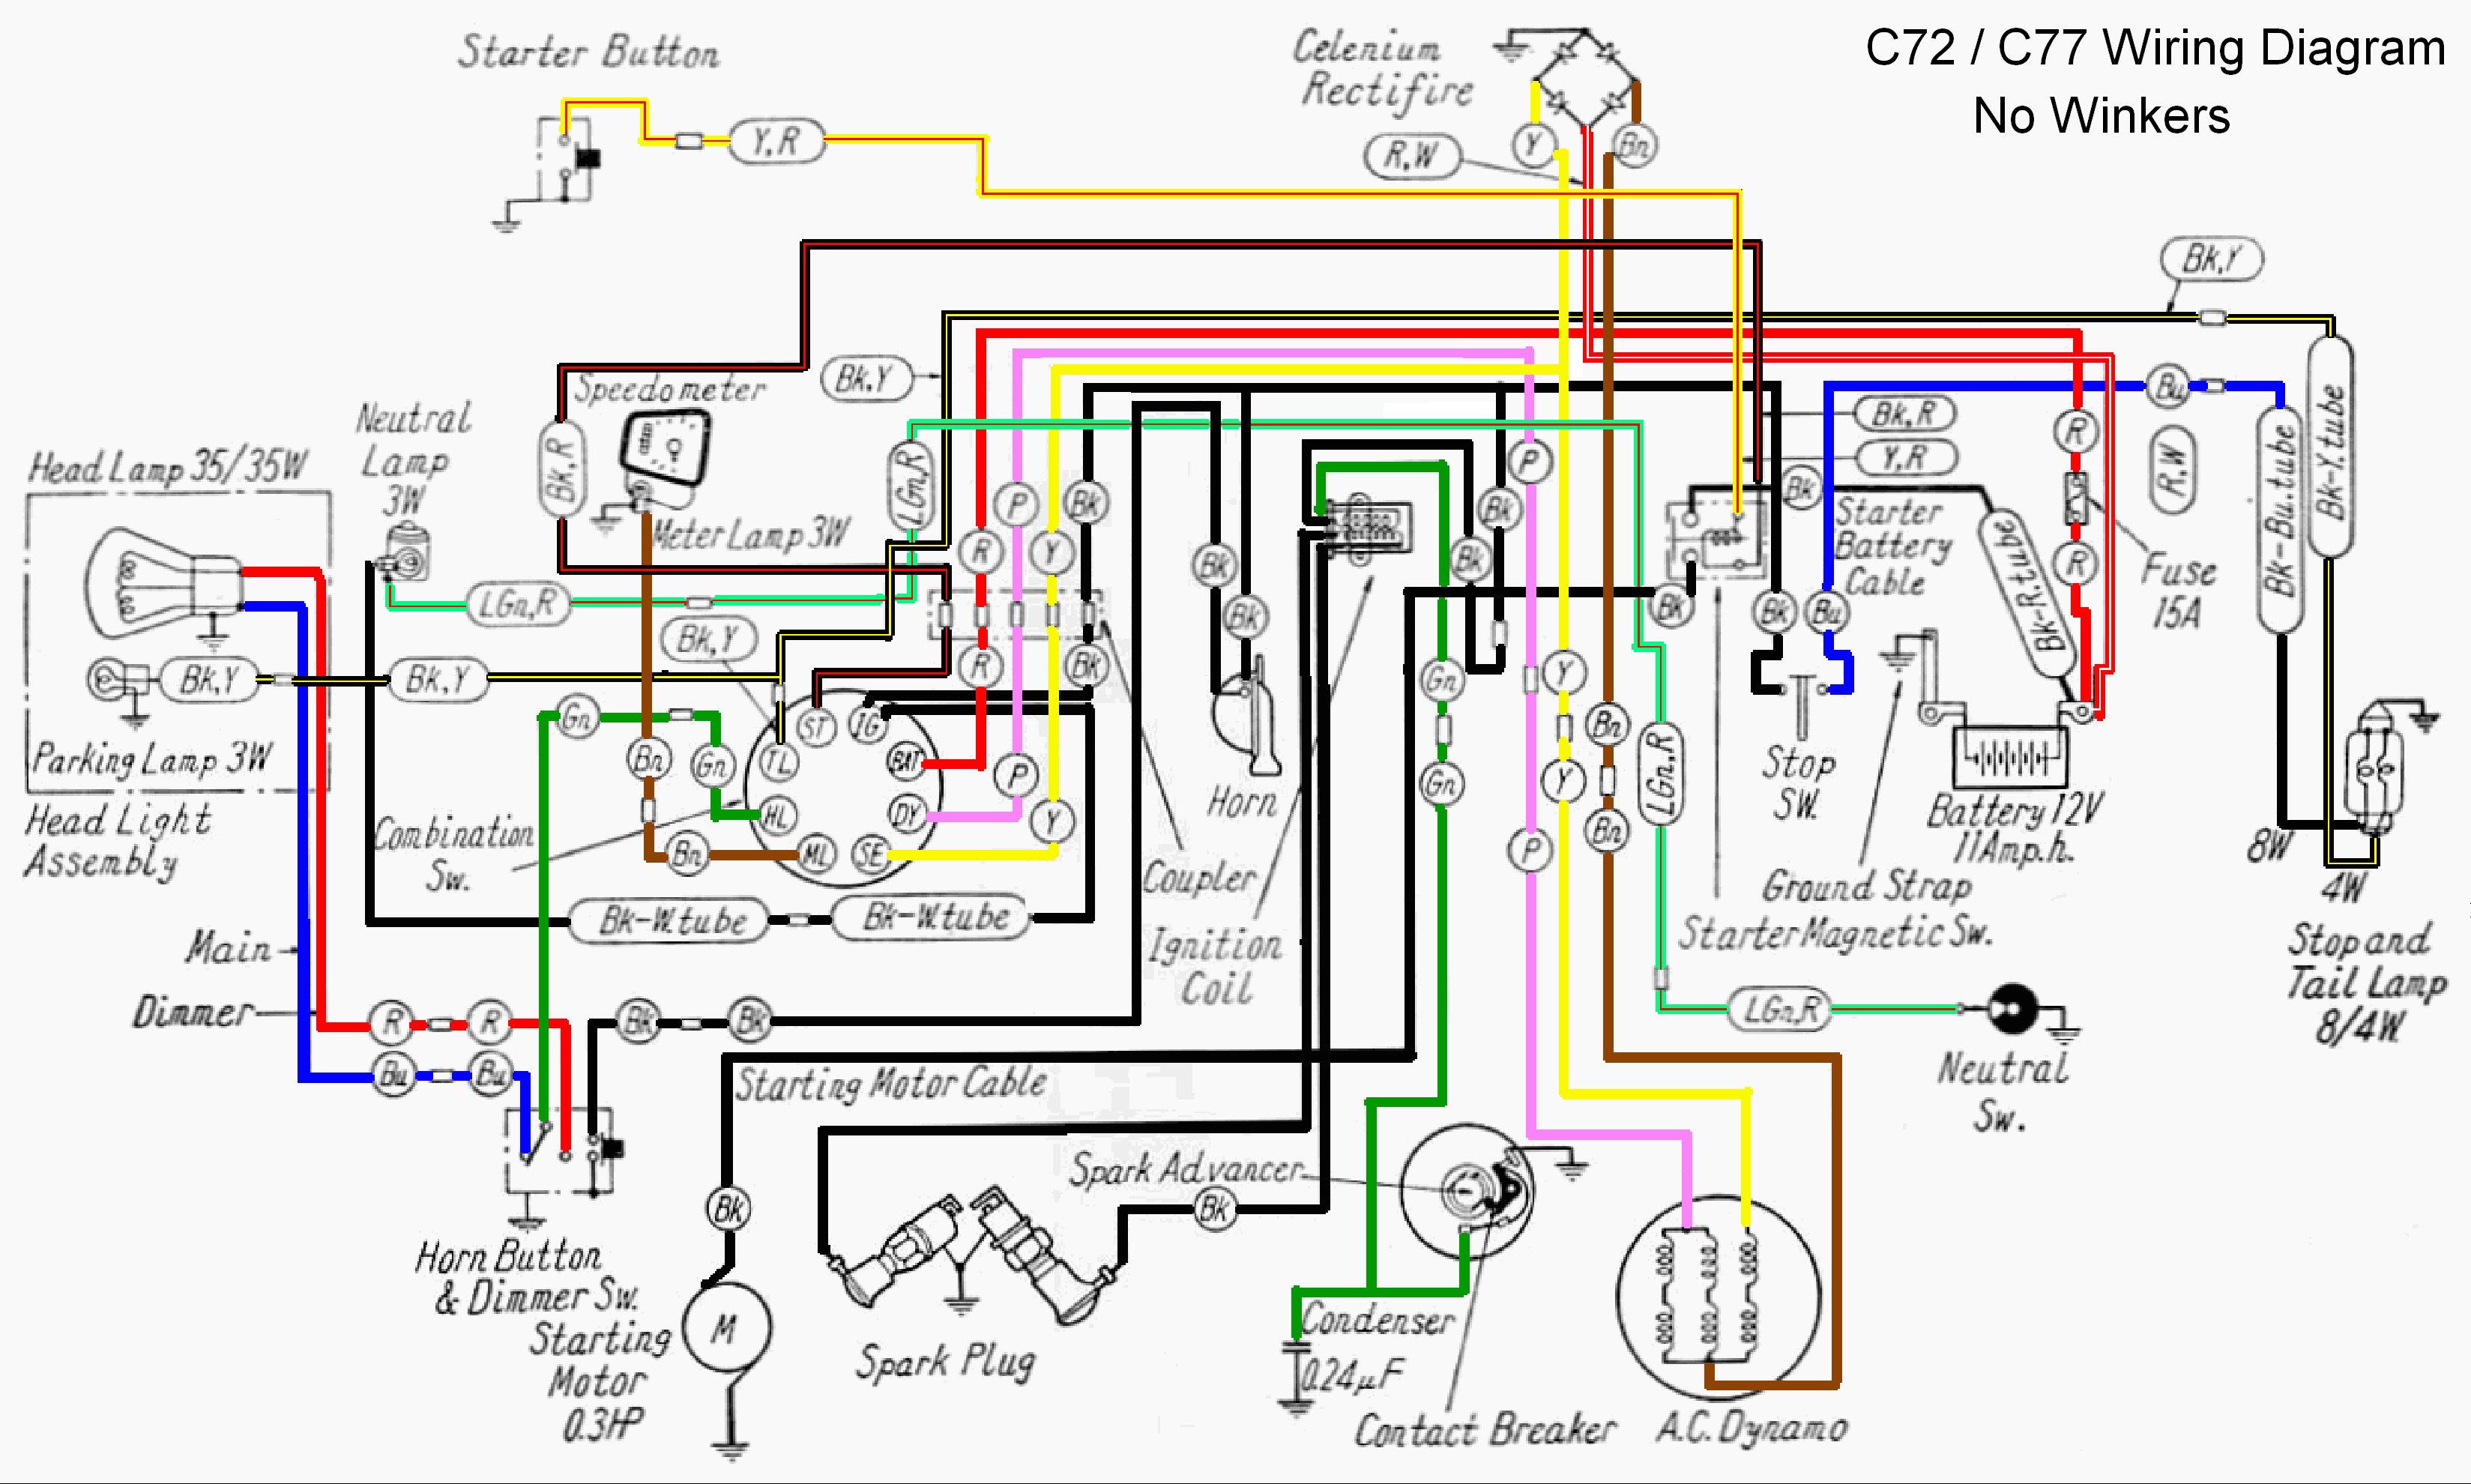 1974 Honda Ct70 Wiring Diagram Detailed Diagrams Ct110 Colored List Of Schematic Circuit U2022 90 Ignition